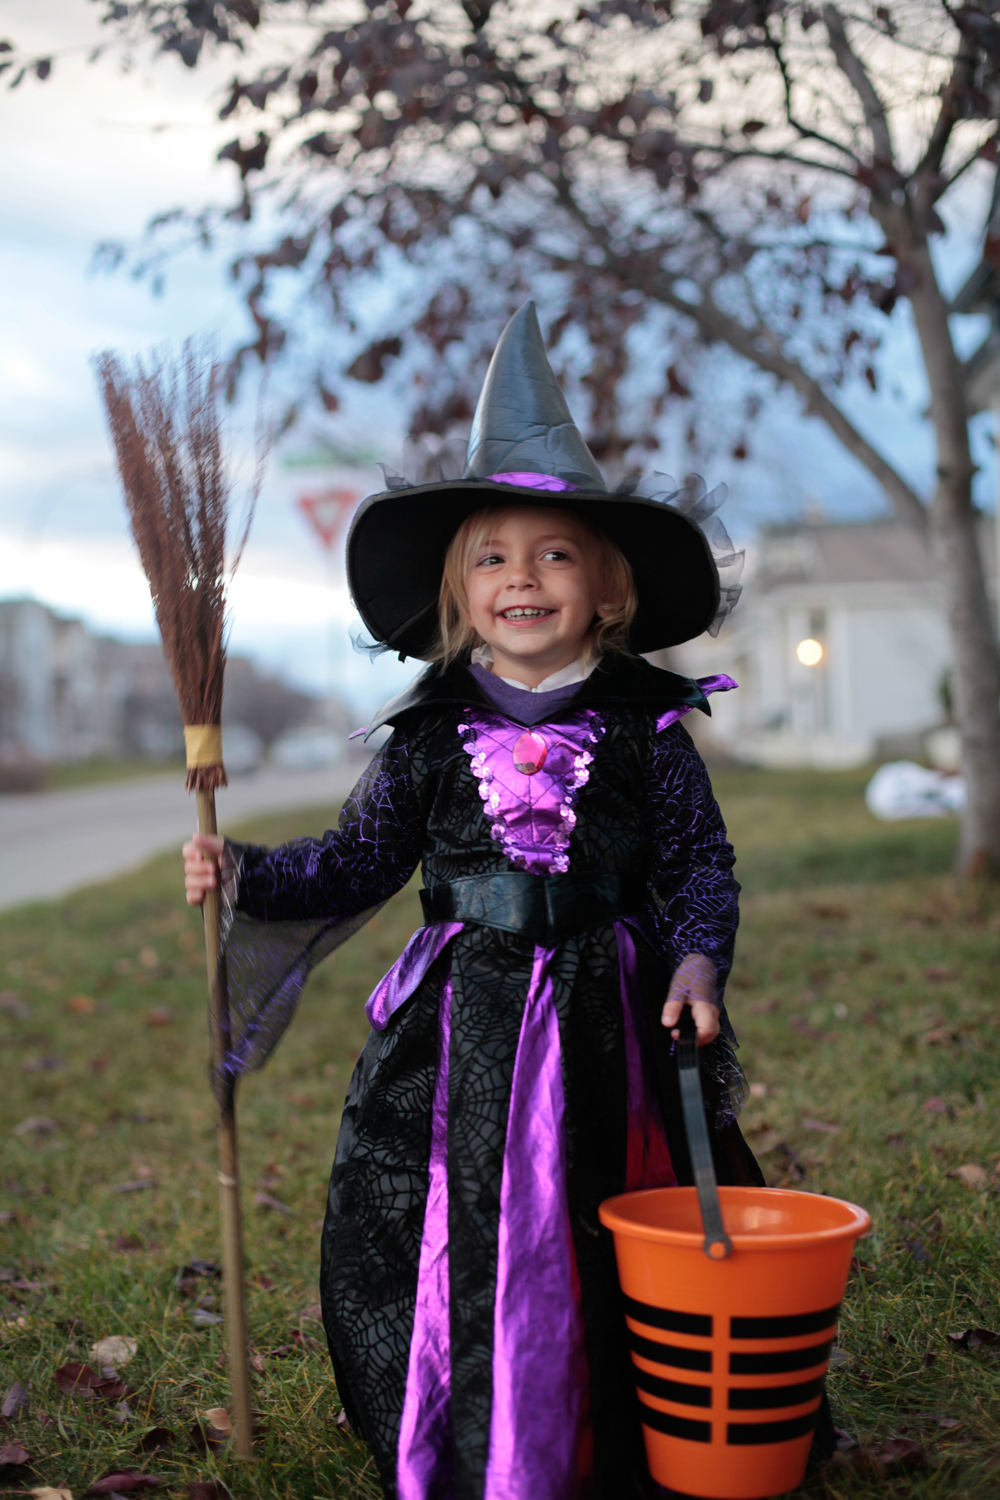 Autumn did not want to be a pretty witch she wanted to be a SCARY witch, but I think shes pulling off a cute witch ;)